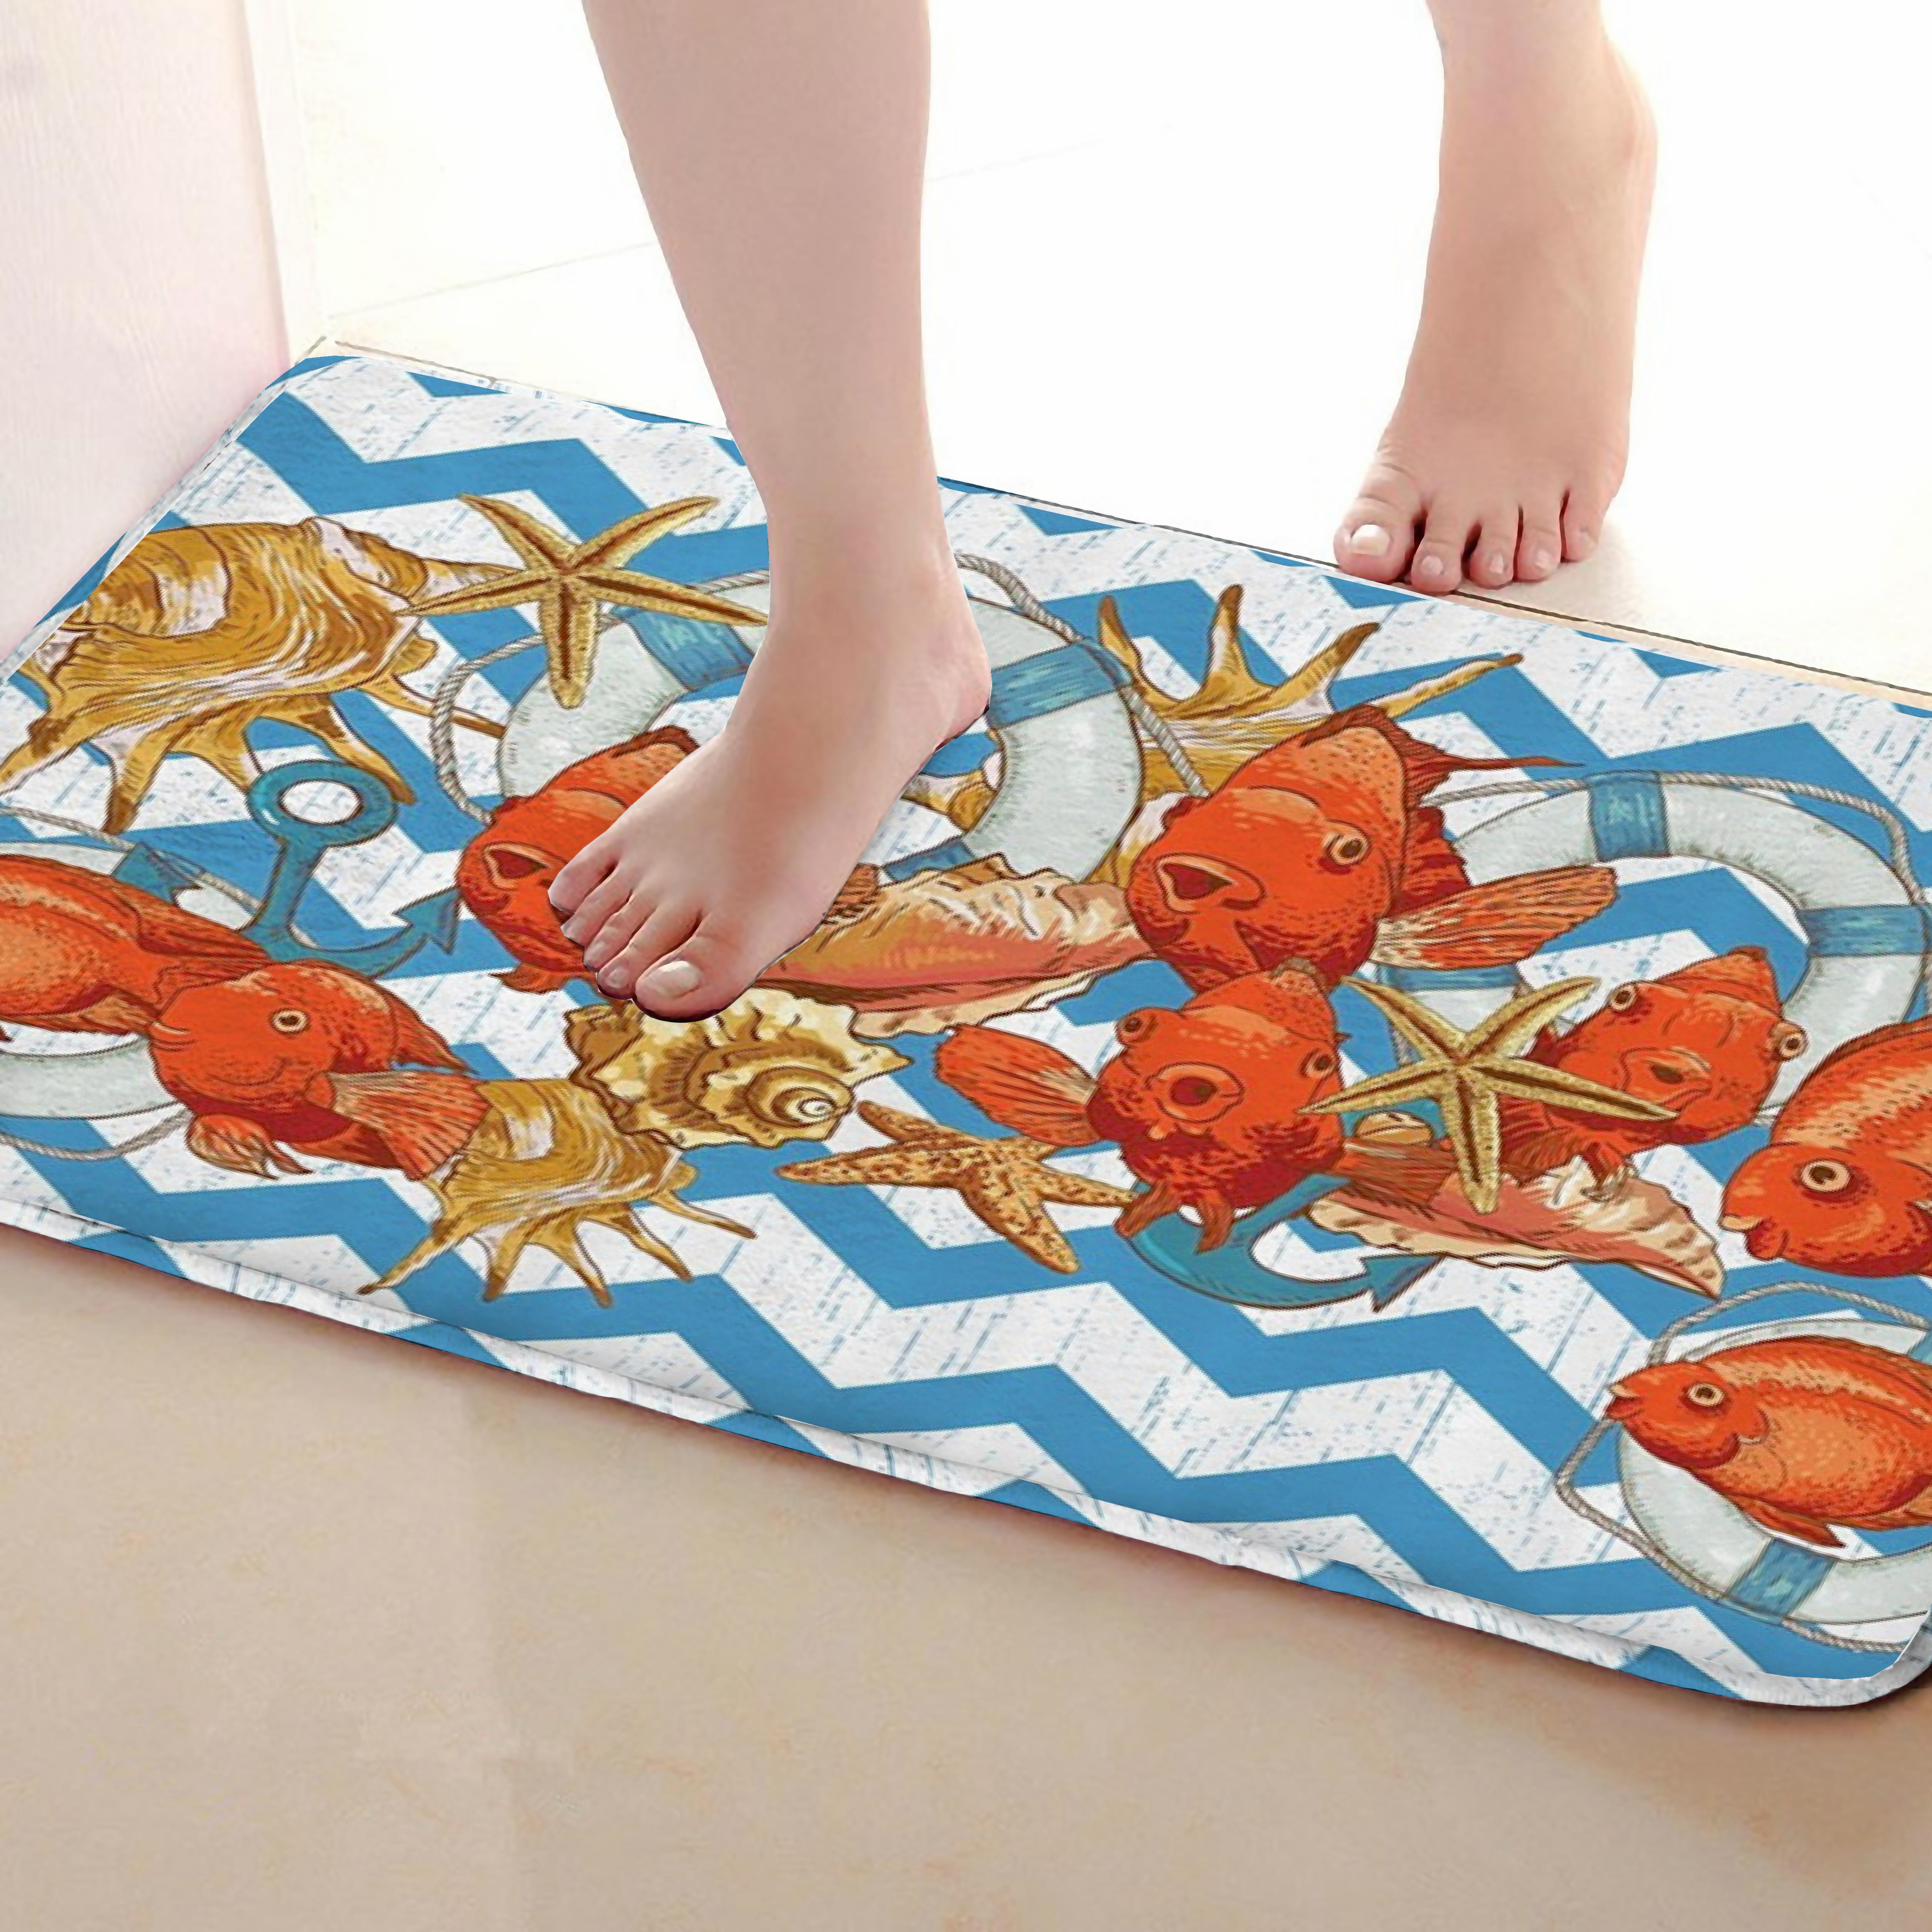 Fish Style Bathroom Mat,Funny Anti skid Bath Mat,Shower Curtains Accessories,Matching Your Shower Curtain